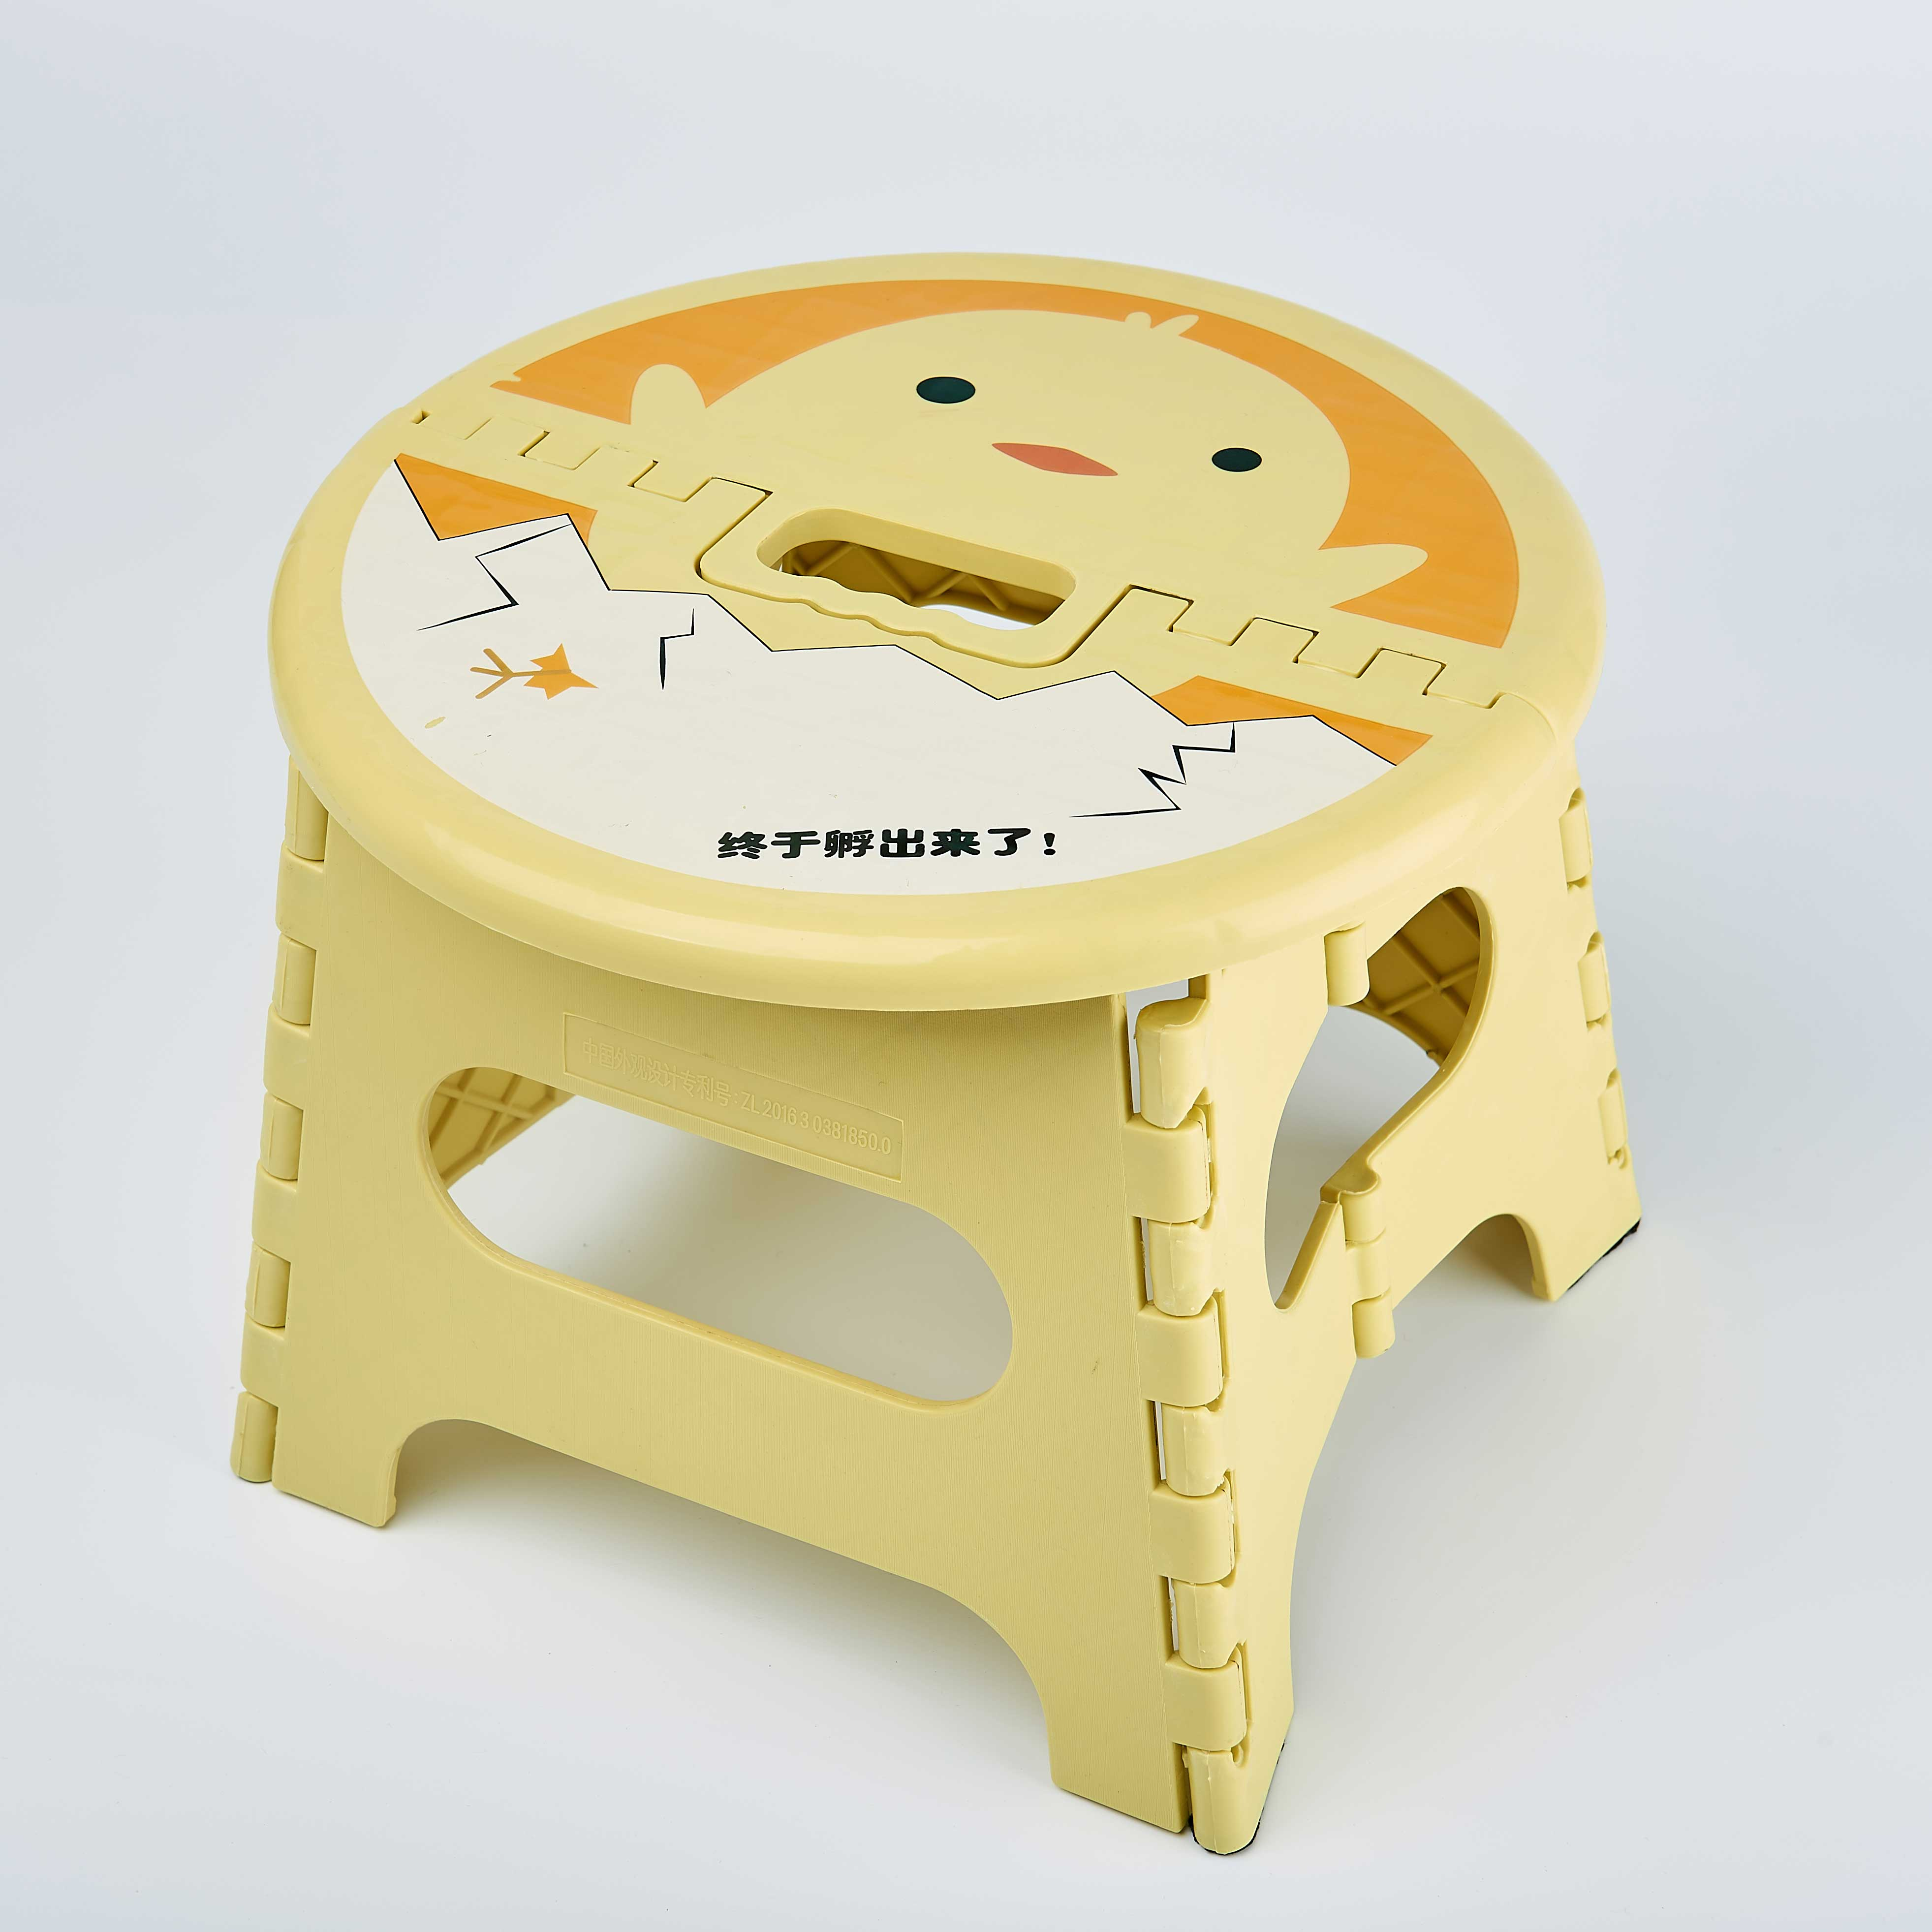 Thickened folding round stool cartoon mini small bench outdoor portable train plastic Maza children carrychair chair